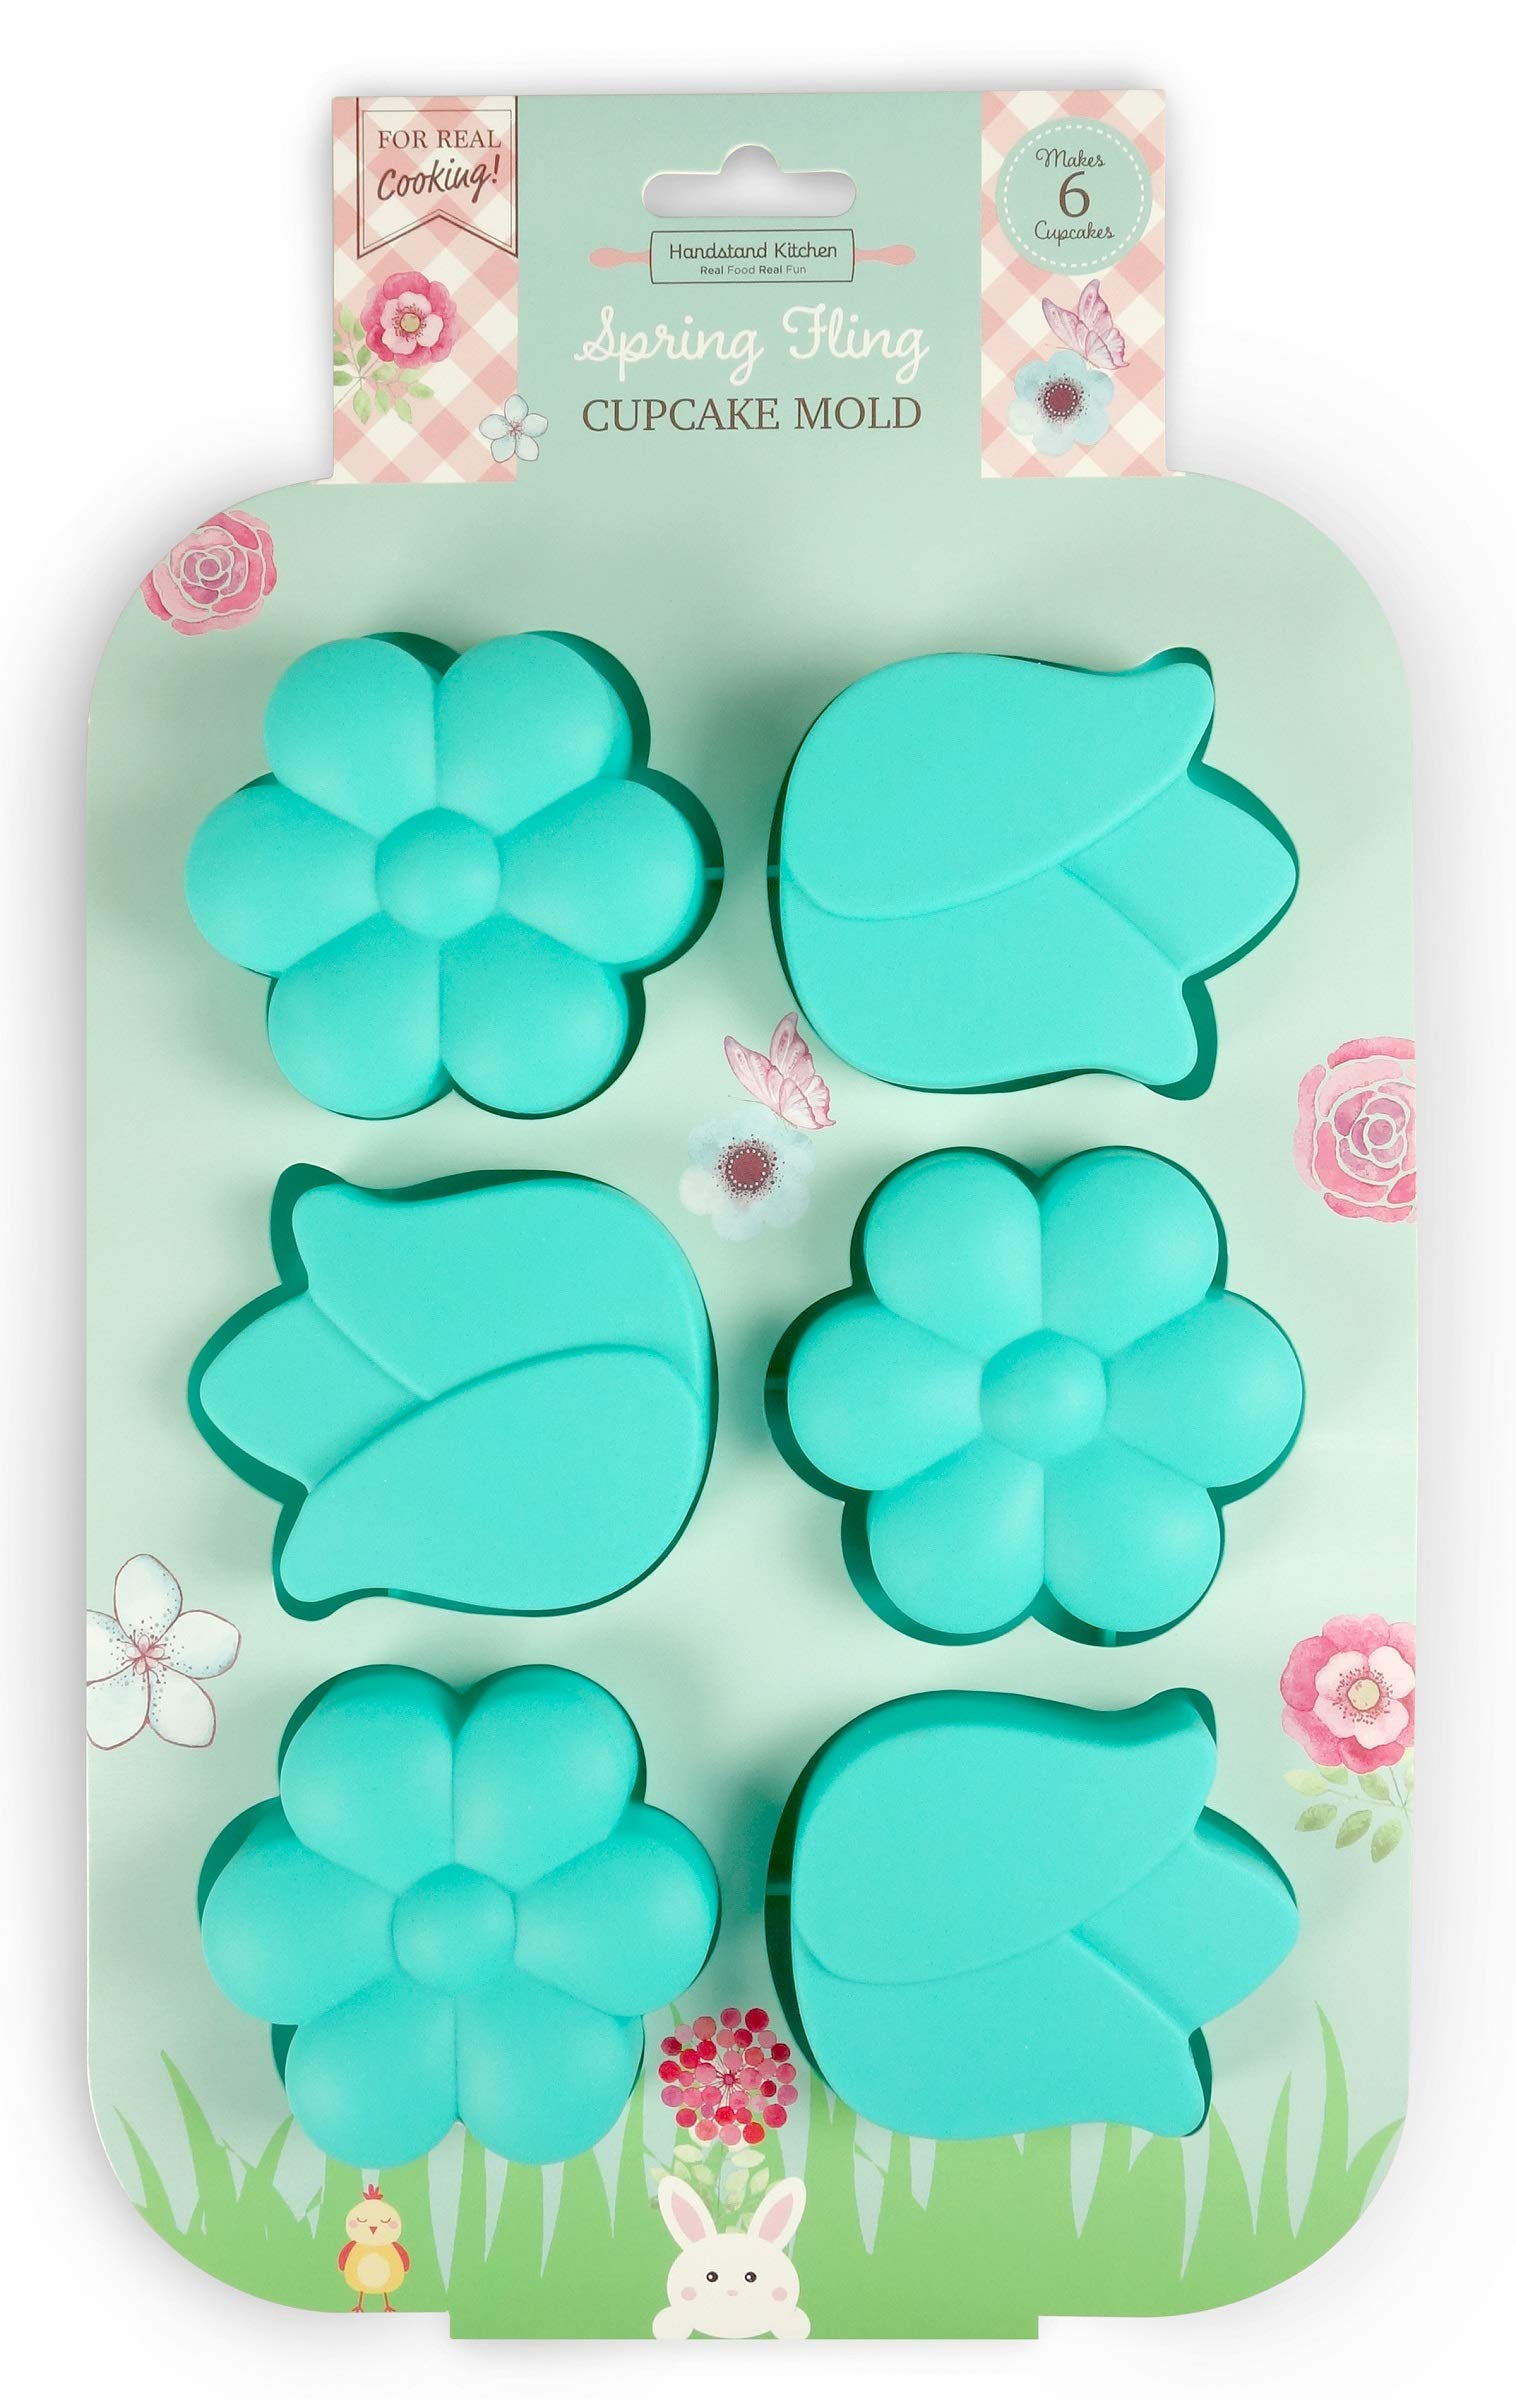 Handstand Kitchen Spring Fling Silicone Flower Shaped Cupcake Mold